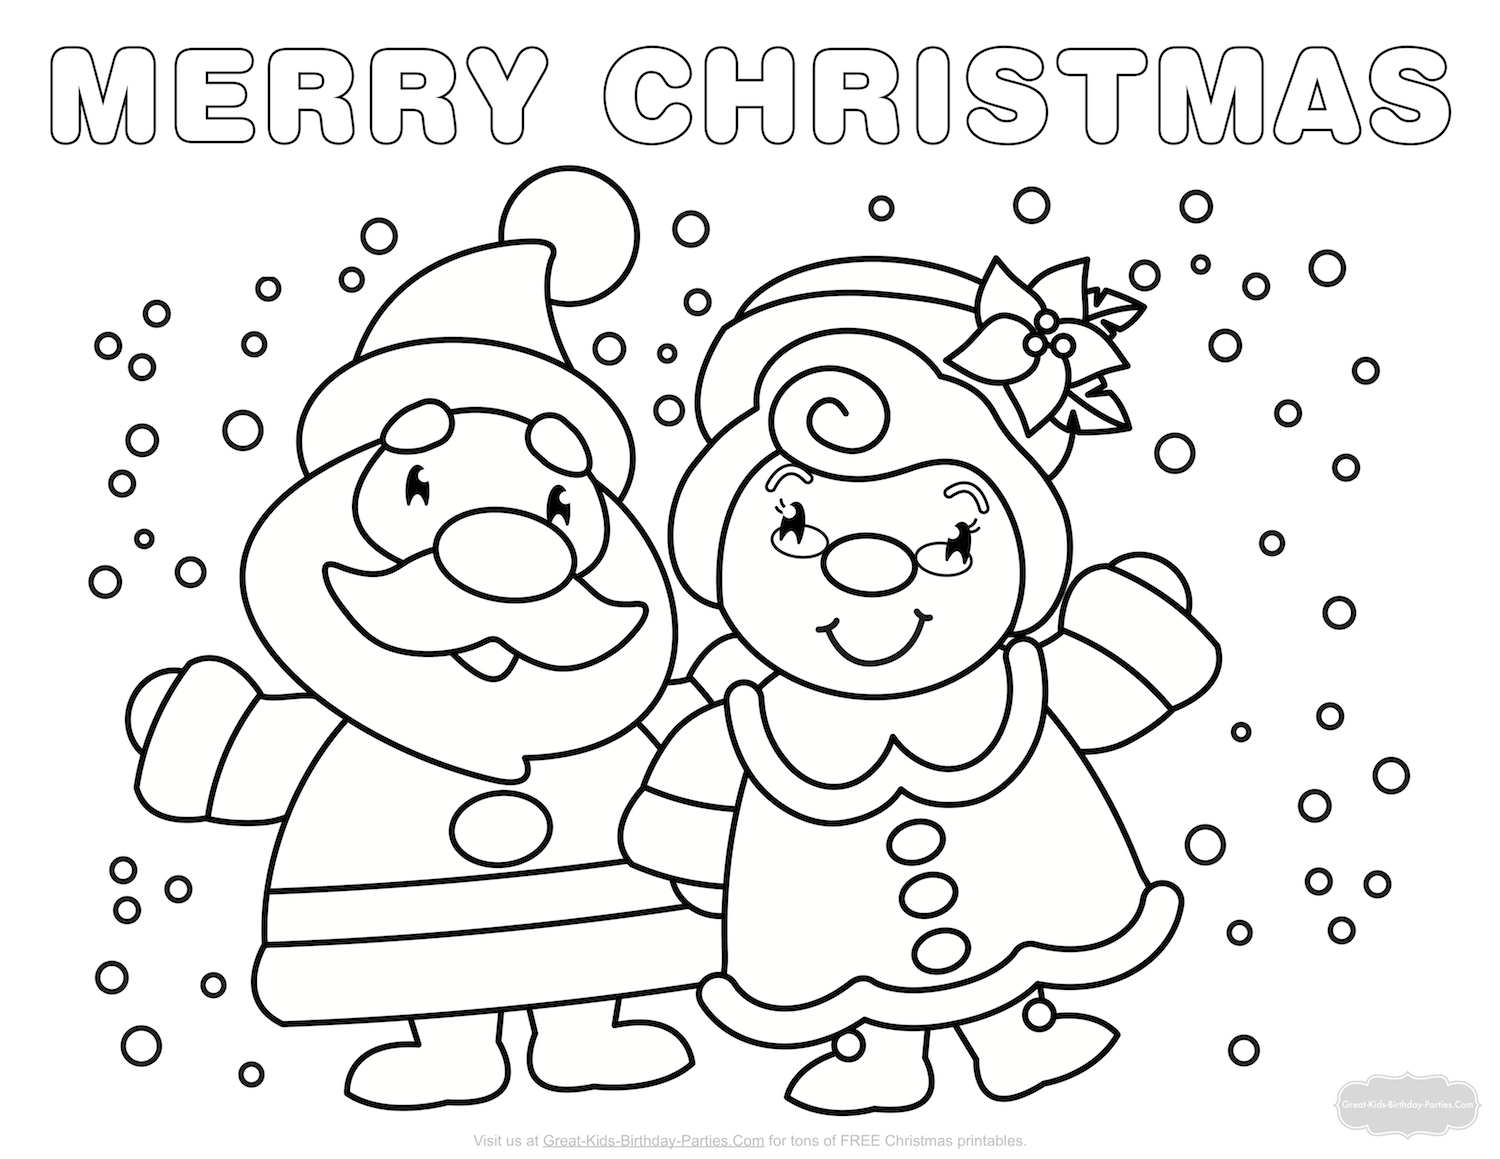 Santa And Rudolph Coloring Pages 30 Santa Claus Coloring Pages Gallery Coloring Sheets